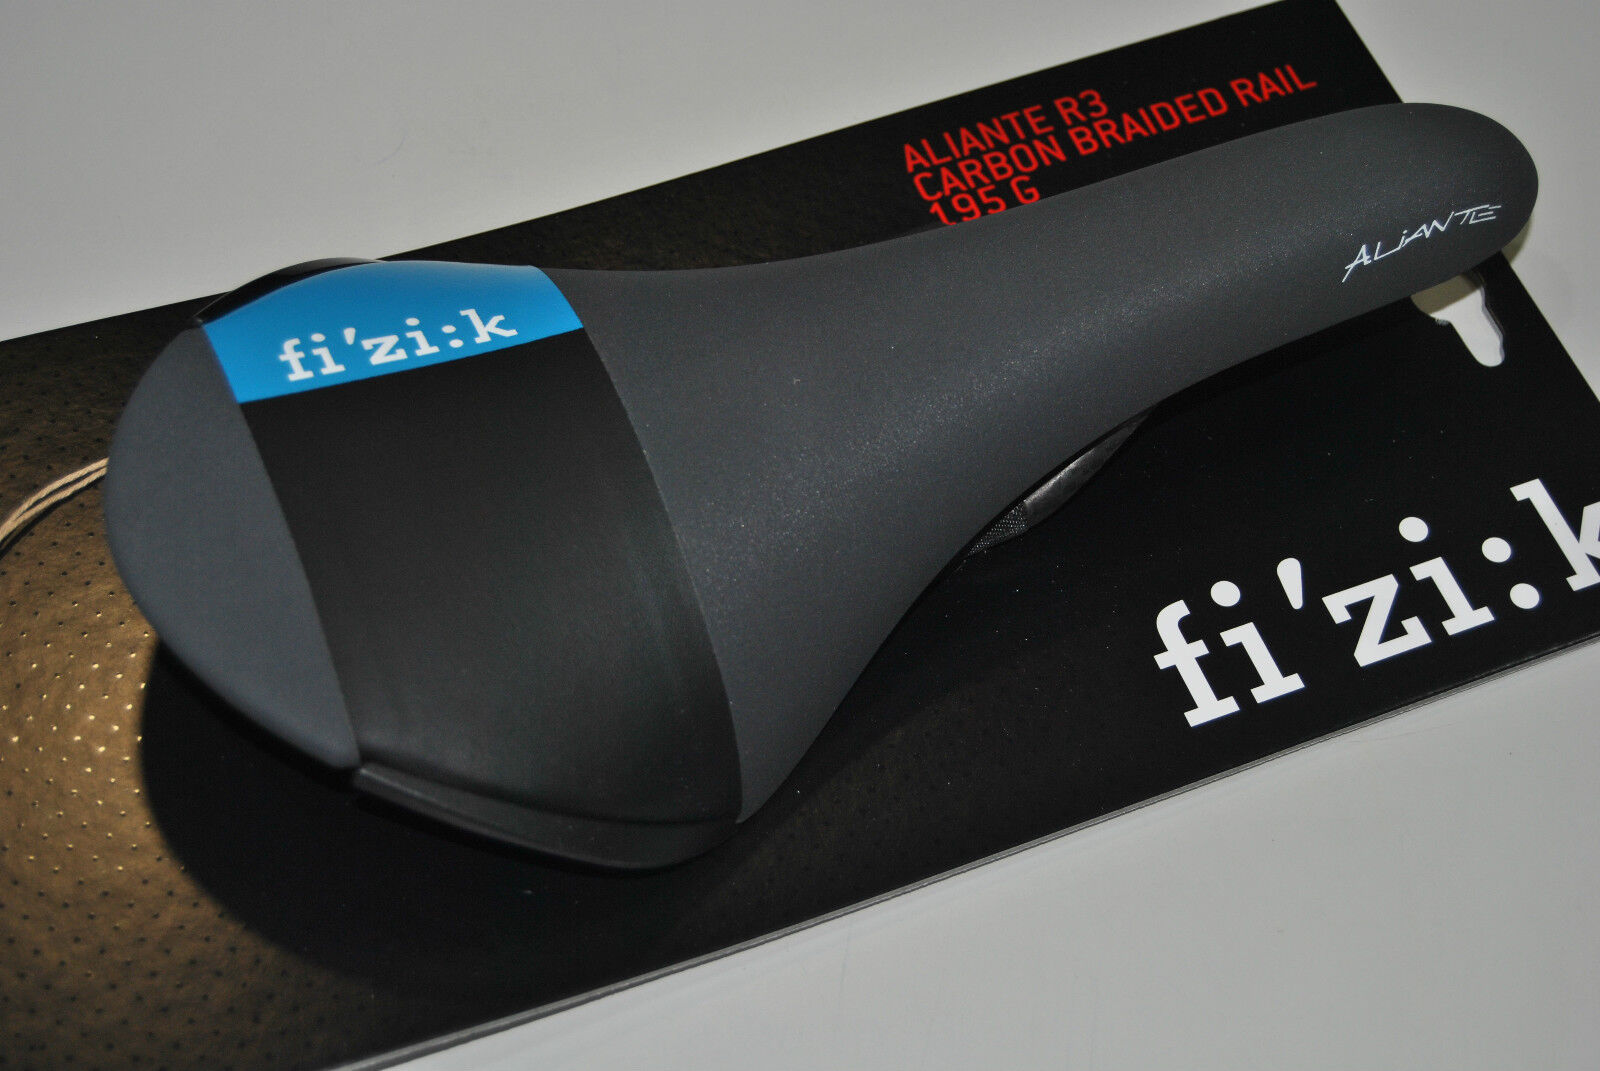 Selle FIZIK Mod.ALIANTE R3 tressé Carbone black blue SADDLE aliante R3 VOITURE